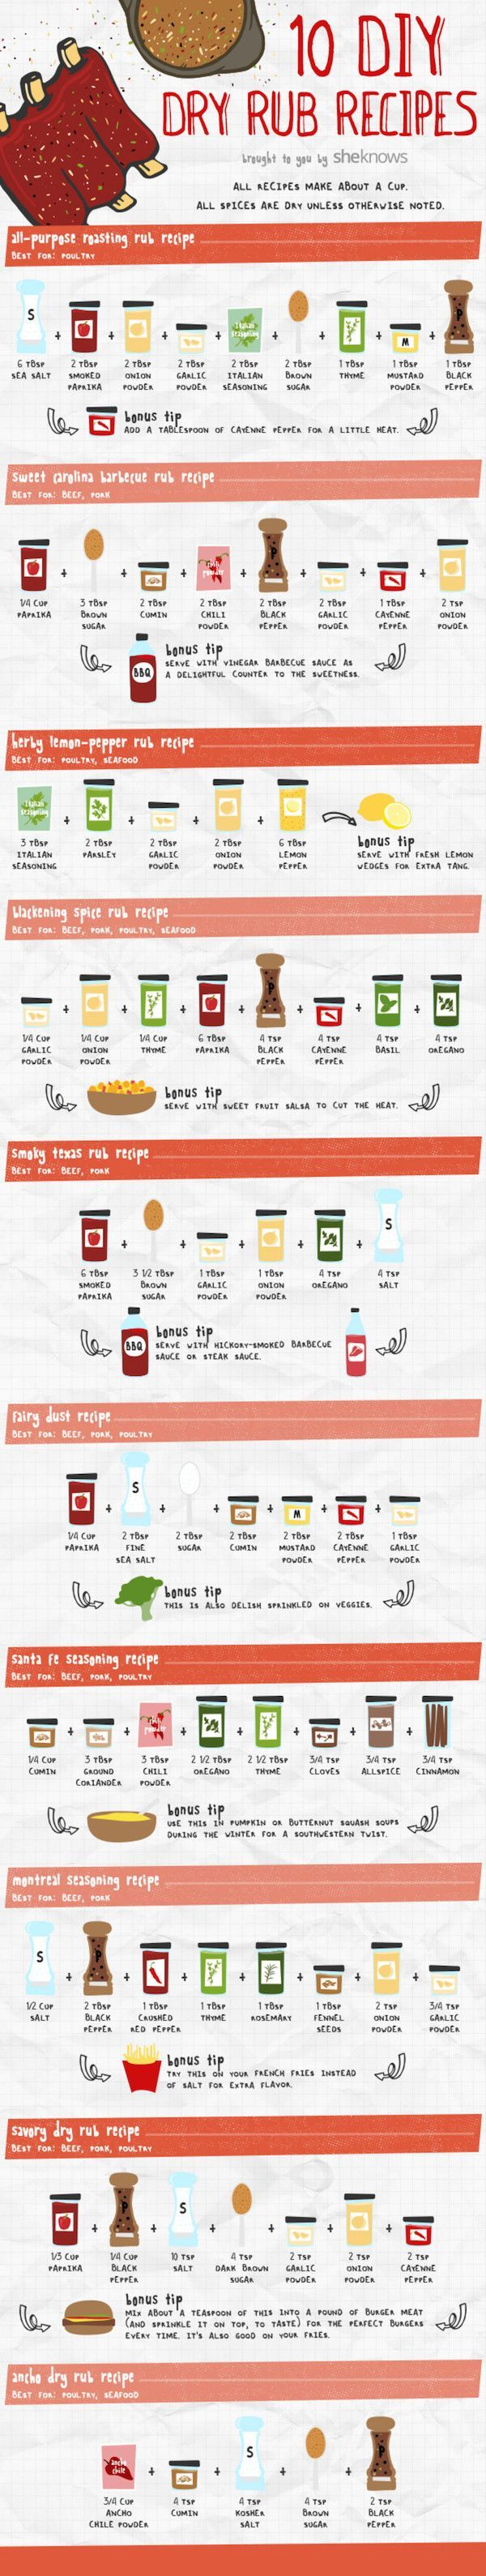 The Ultimate BBQ Rub Recipe Cheat Sheet By Lindi Smith1 day facebook twitter pinterest Flickr/jeffreywMaking the perfect dry rub for your summer barbecue can get tricky sometimes. Thanks to SheKnows, we have 10 different dry rub recipes all in one easy guide. Whether you're looking for a recipe to bring the heat or a sweet Carolina rub, this infographic has it all. You'll never need to buy store-bought dry rub ever again!These 10 rubs work on all types of meats, but the guide will tell...